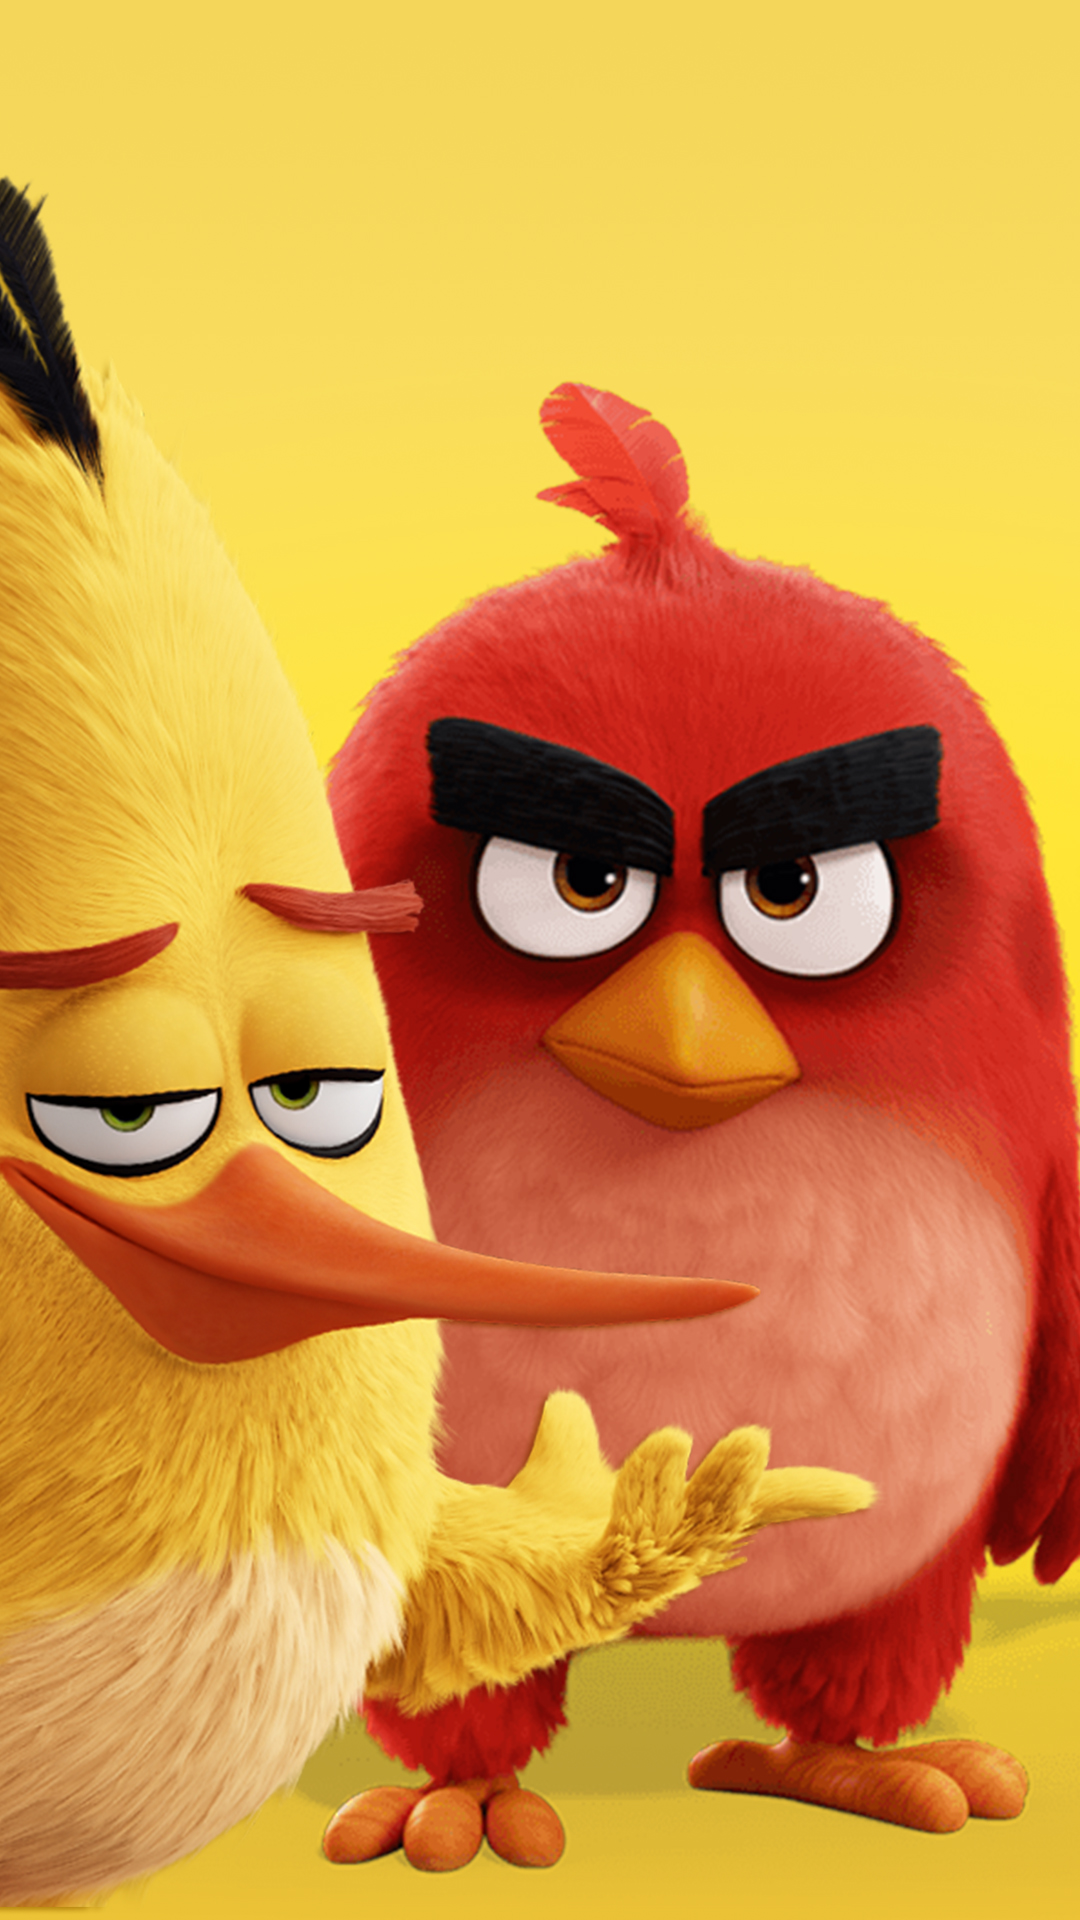 Download free hd 1080 x 1920 mobile wallpapers 2 1 16 angry birds voltagebd Choice Image